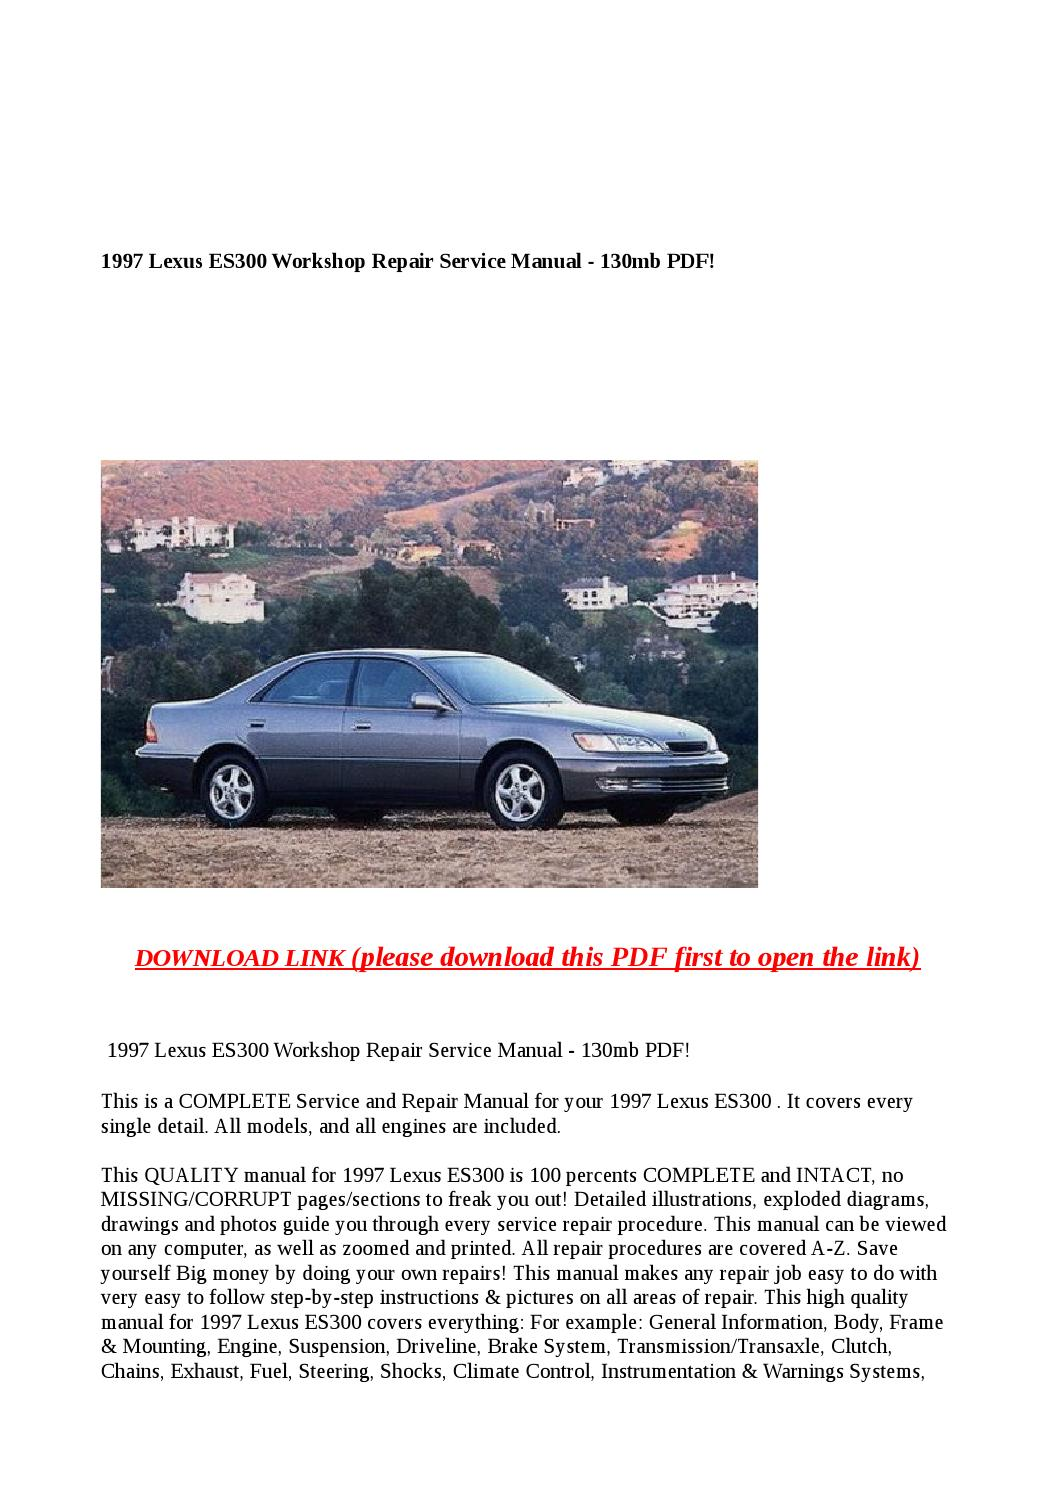 1997 lexus es300 workshop repair service manual 130mb pdf ...